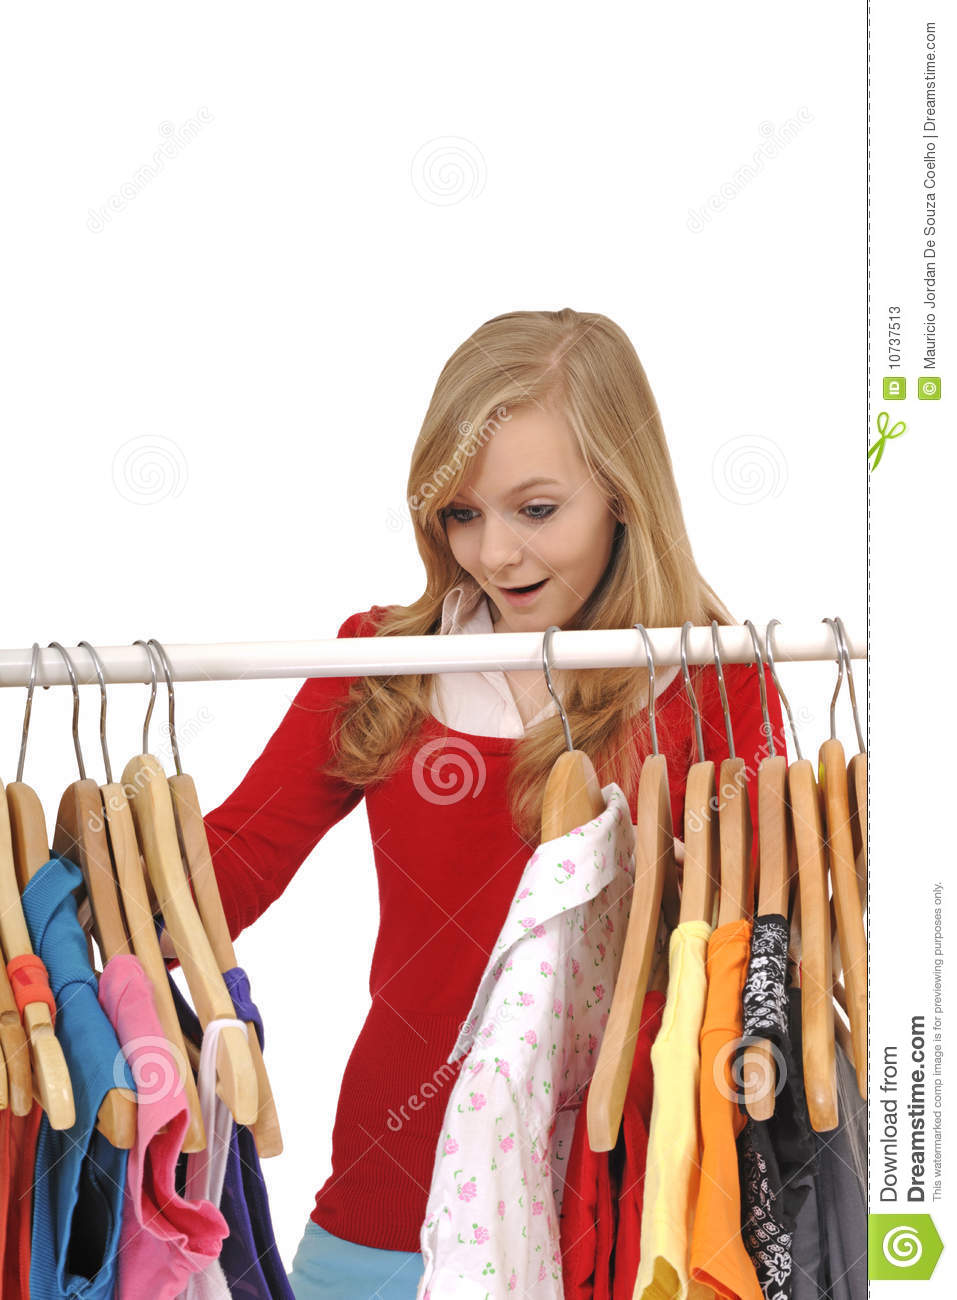 Shopping for teen clothing